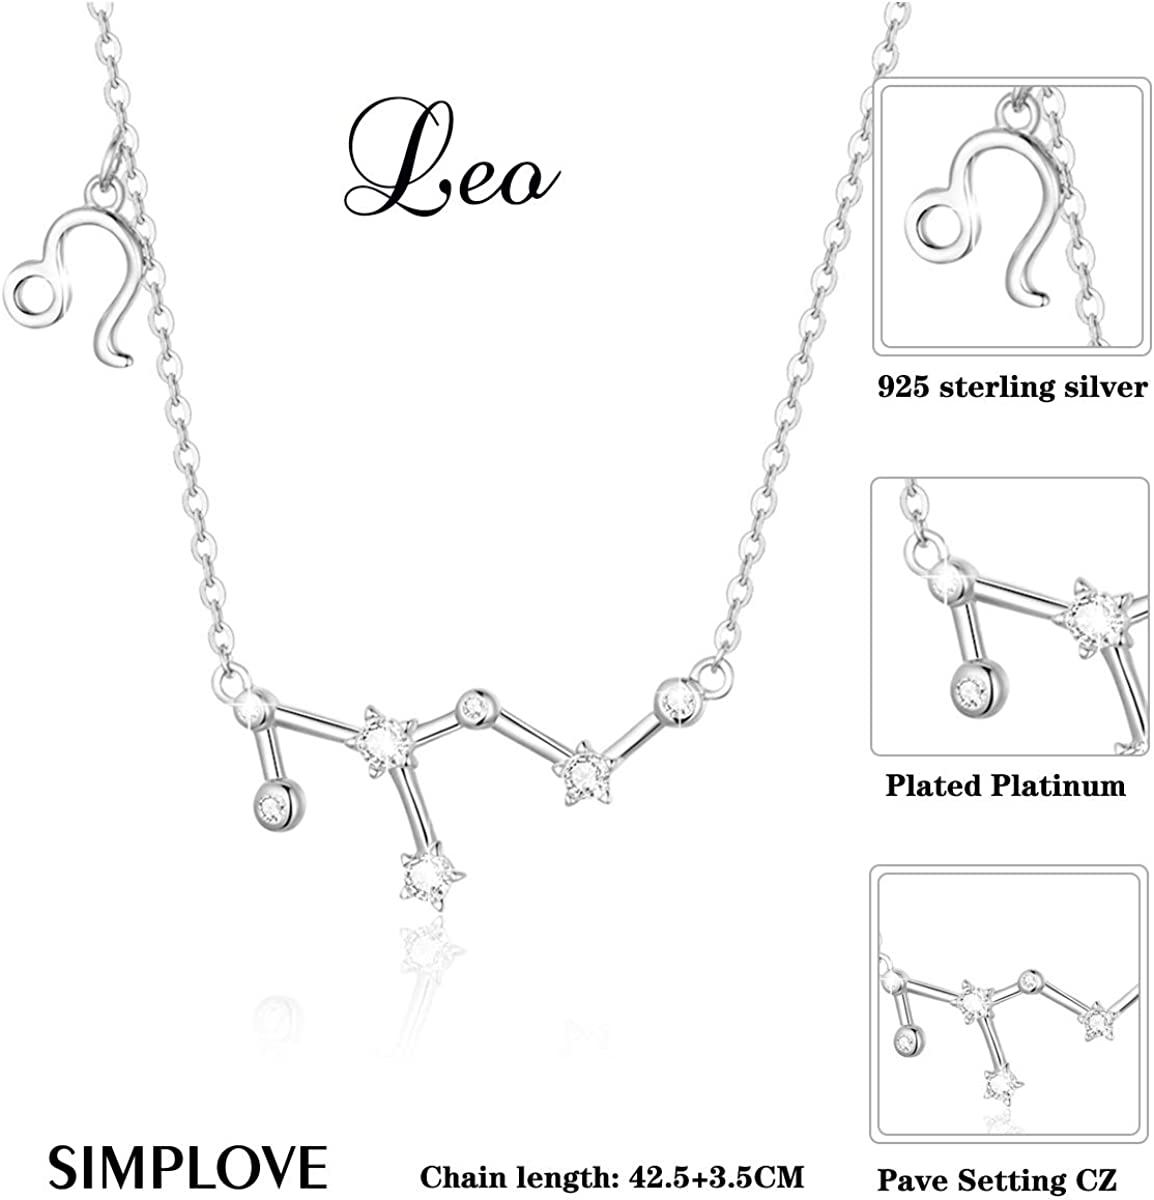 SIMPLOVE 12 Constellation Pendant Necklace 925 Sterling Silver Horoscope Zodiac Sign Birthday Necklace for Women Gift Jewelry 16.5+1.2